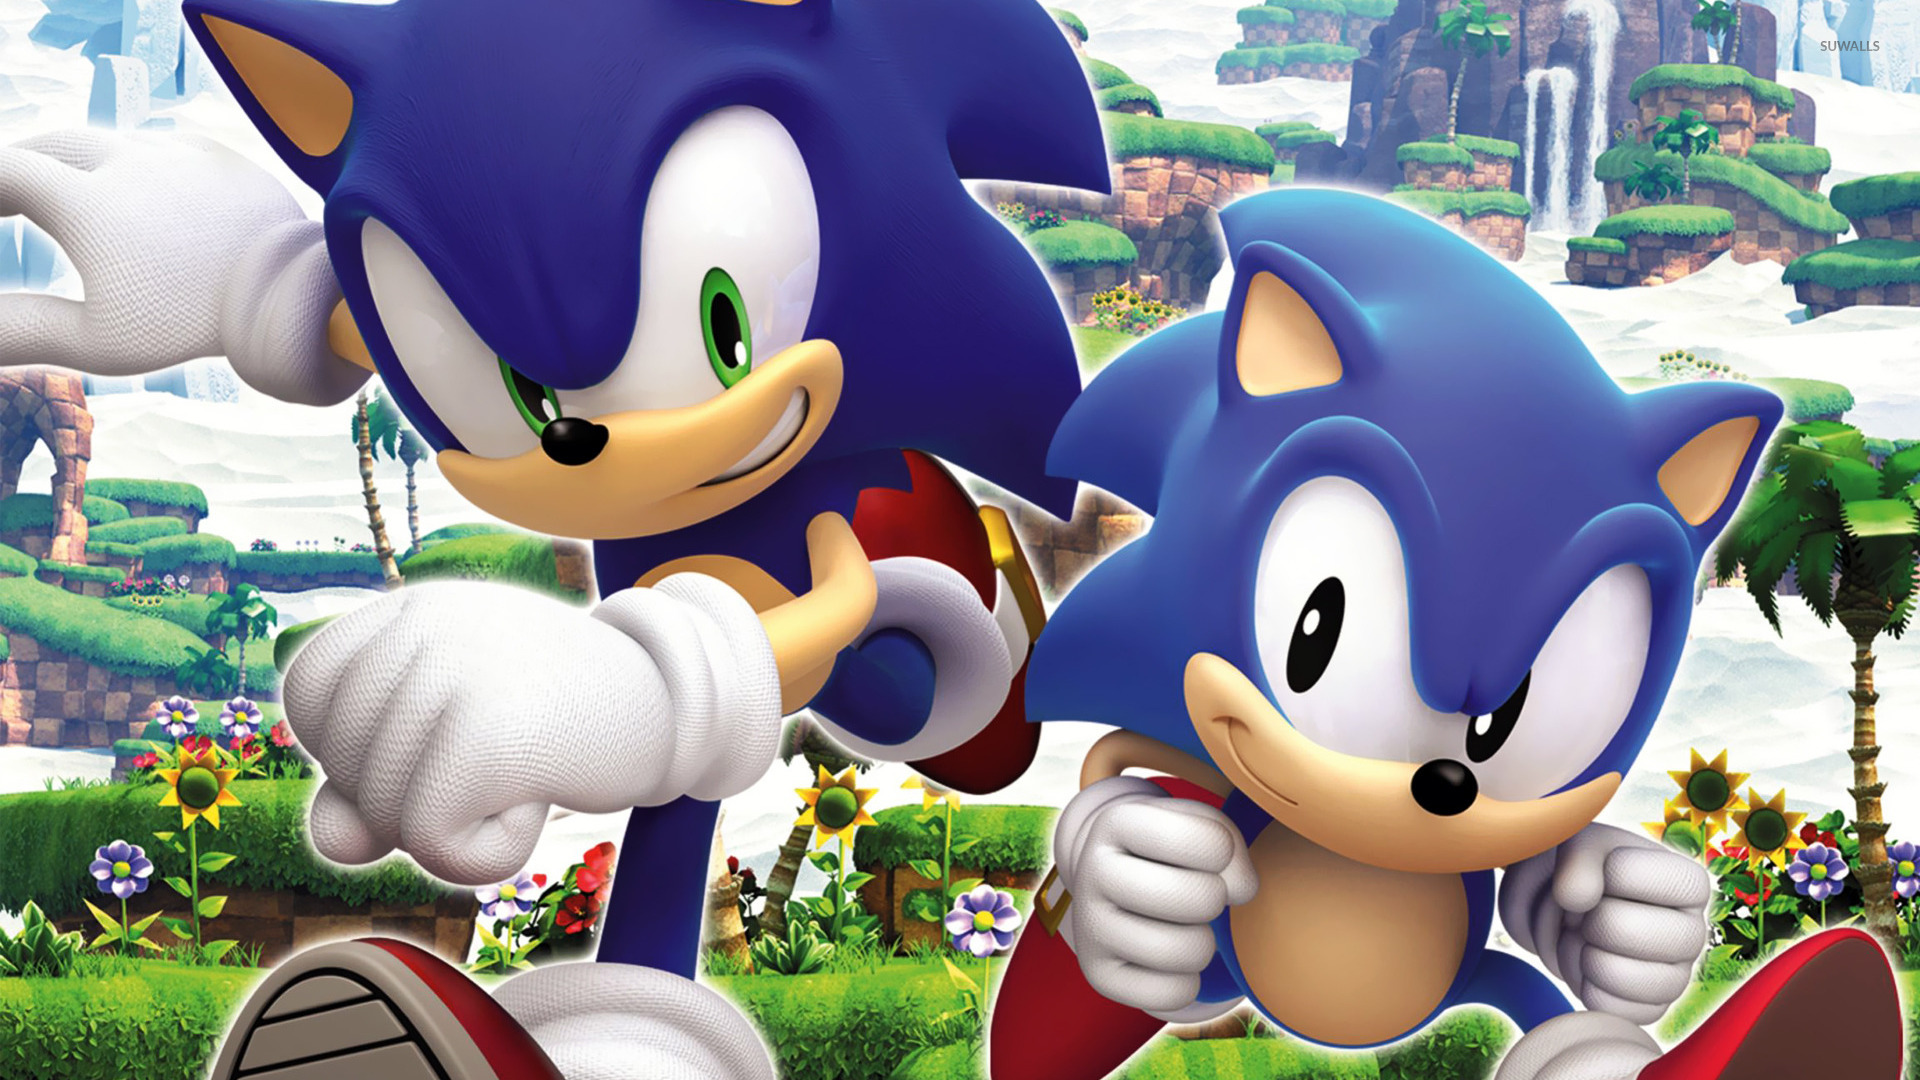 40k Quotes Wallpapers Sonic Generations Wallpaper Game Wallpapers 14283